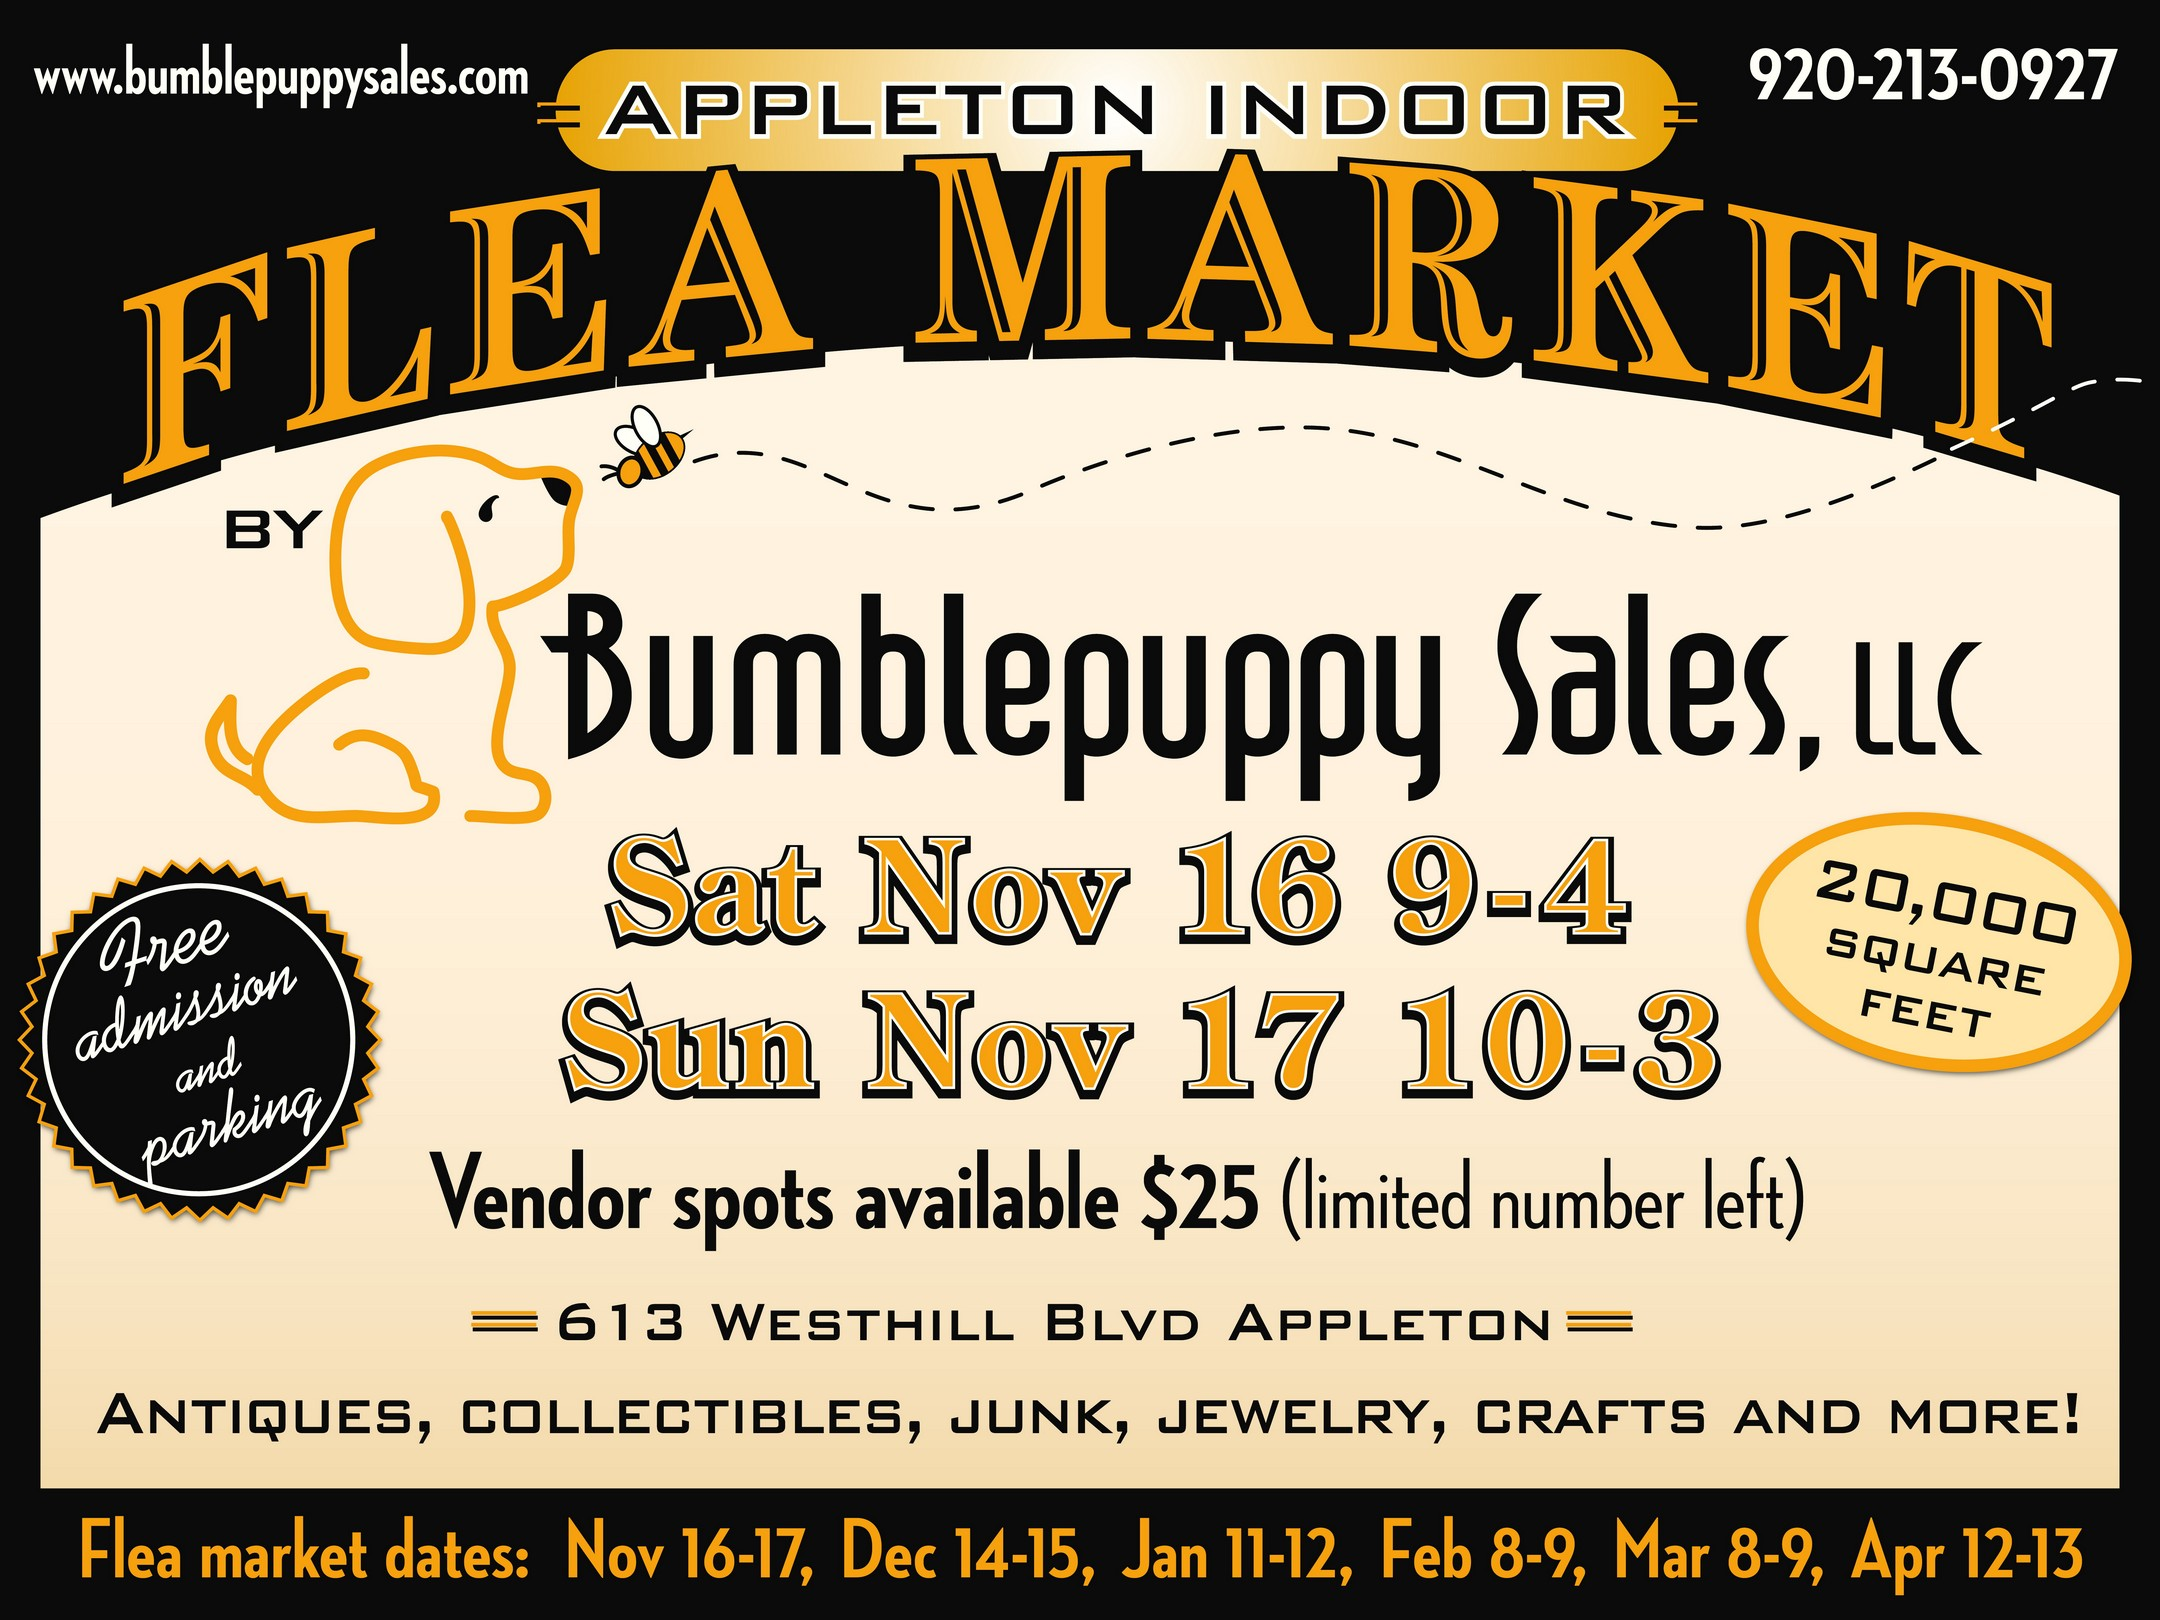 Appleton Indoor Flea Market